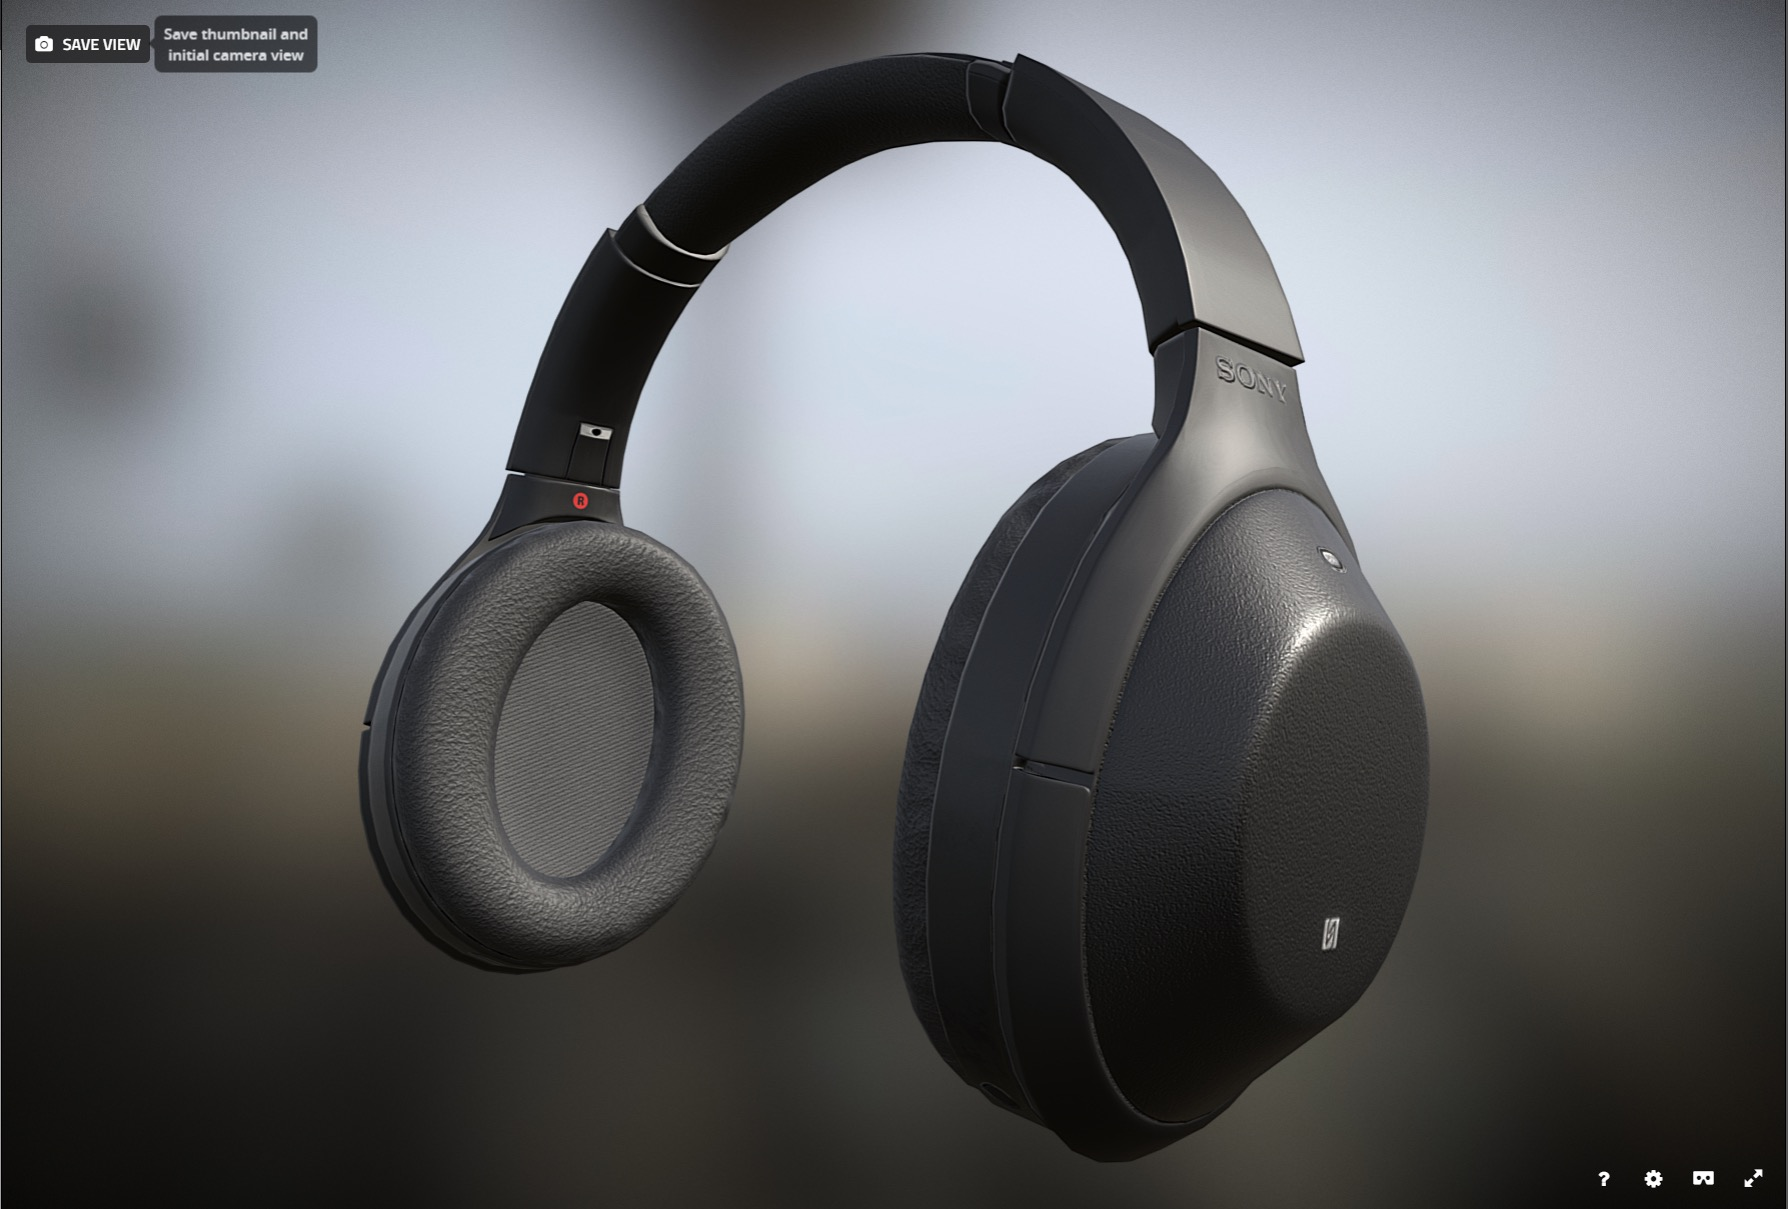 Sketchfab Community Blog - Fix it Friday: Sony MDR 1000X Headphones